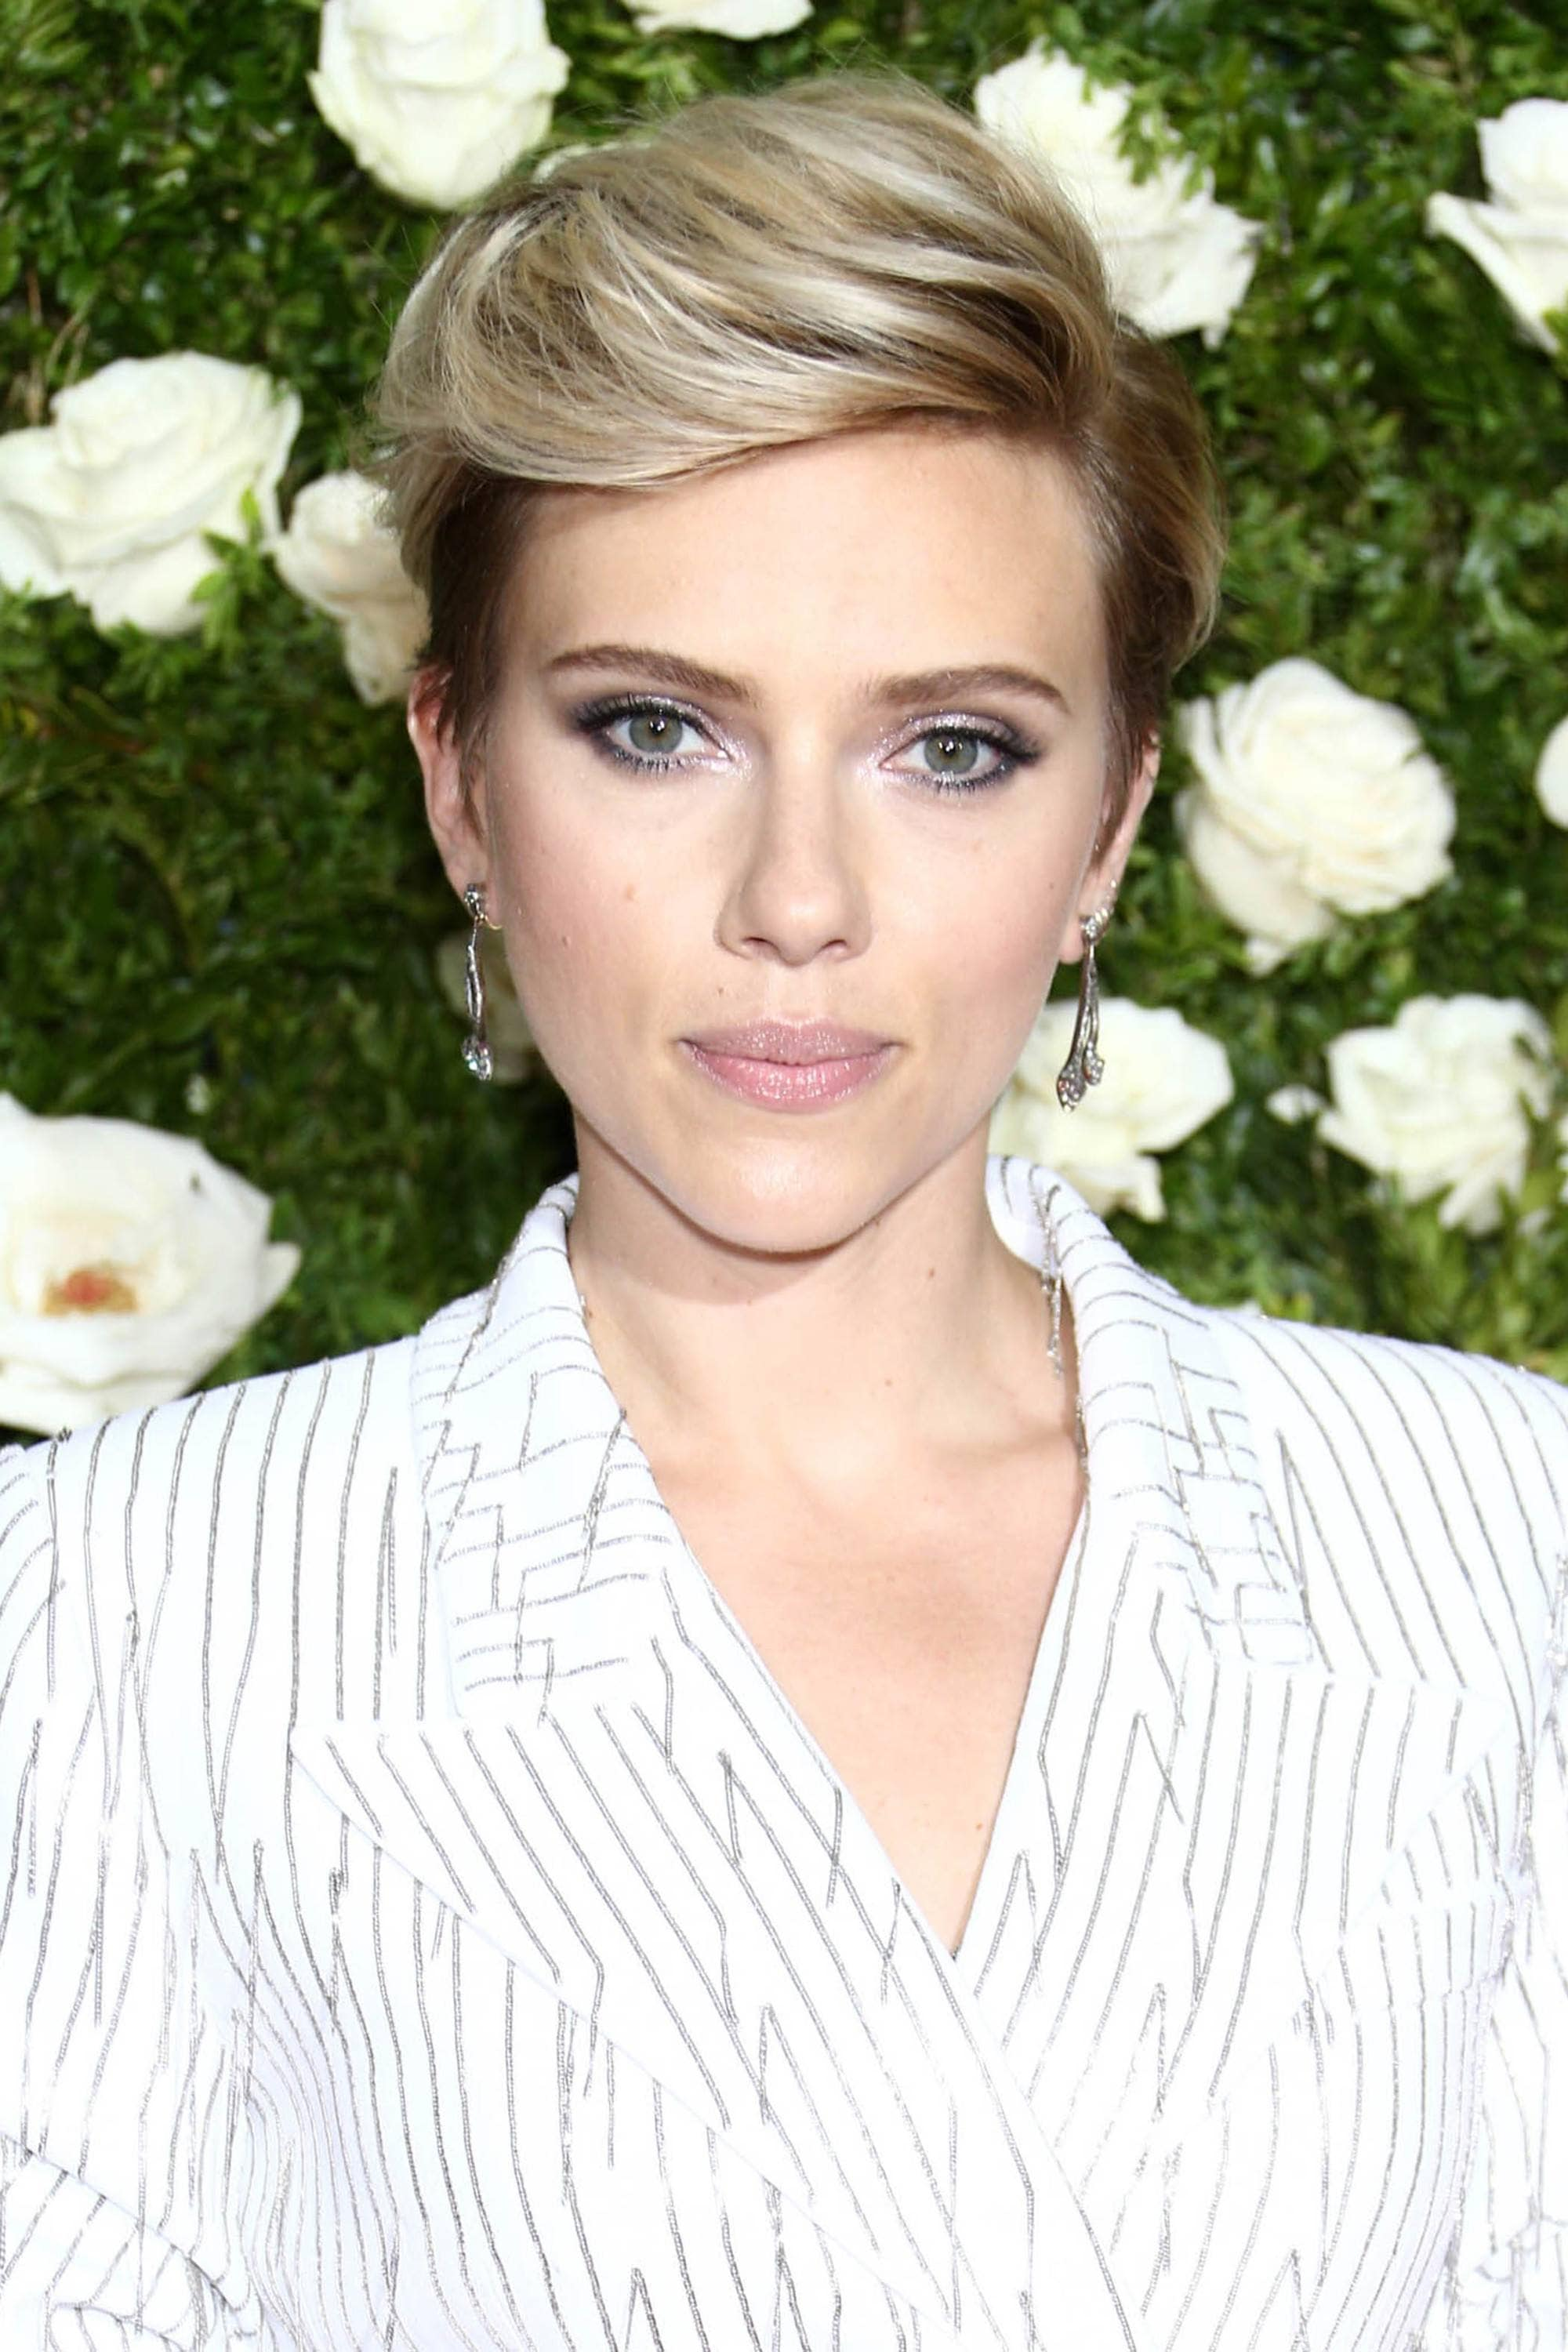 triangle face hairstyles: scarlett johansson with a blonde quiffed pixie cut